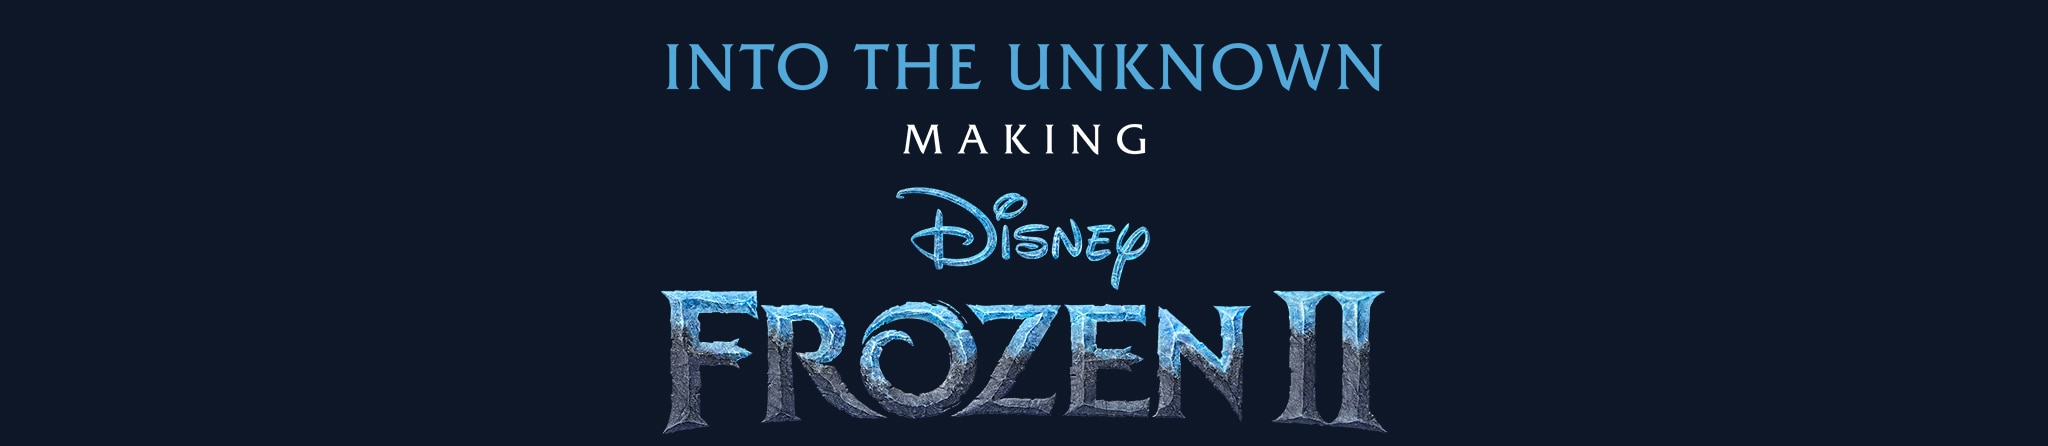 Into the Unknown: Making Disney Frozen II